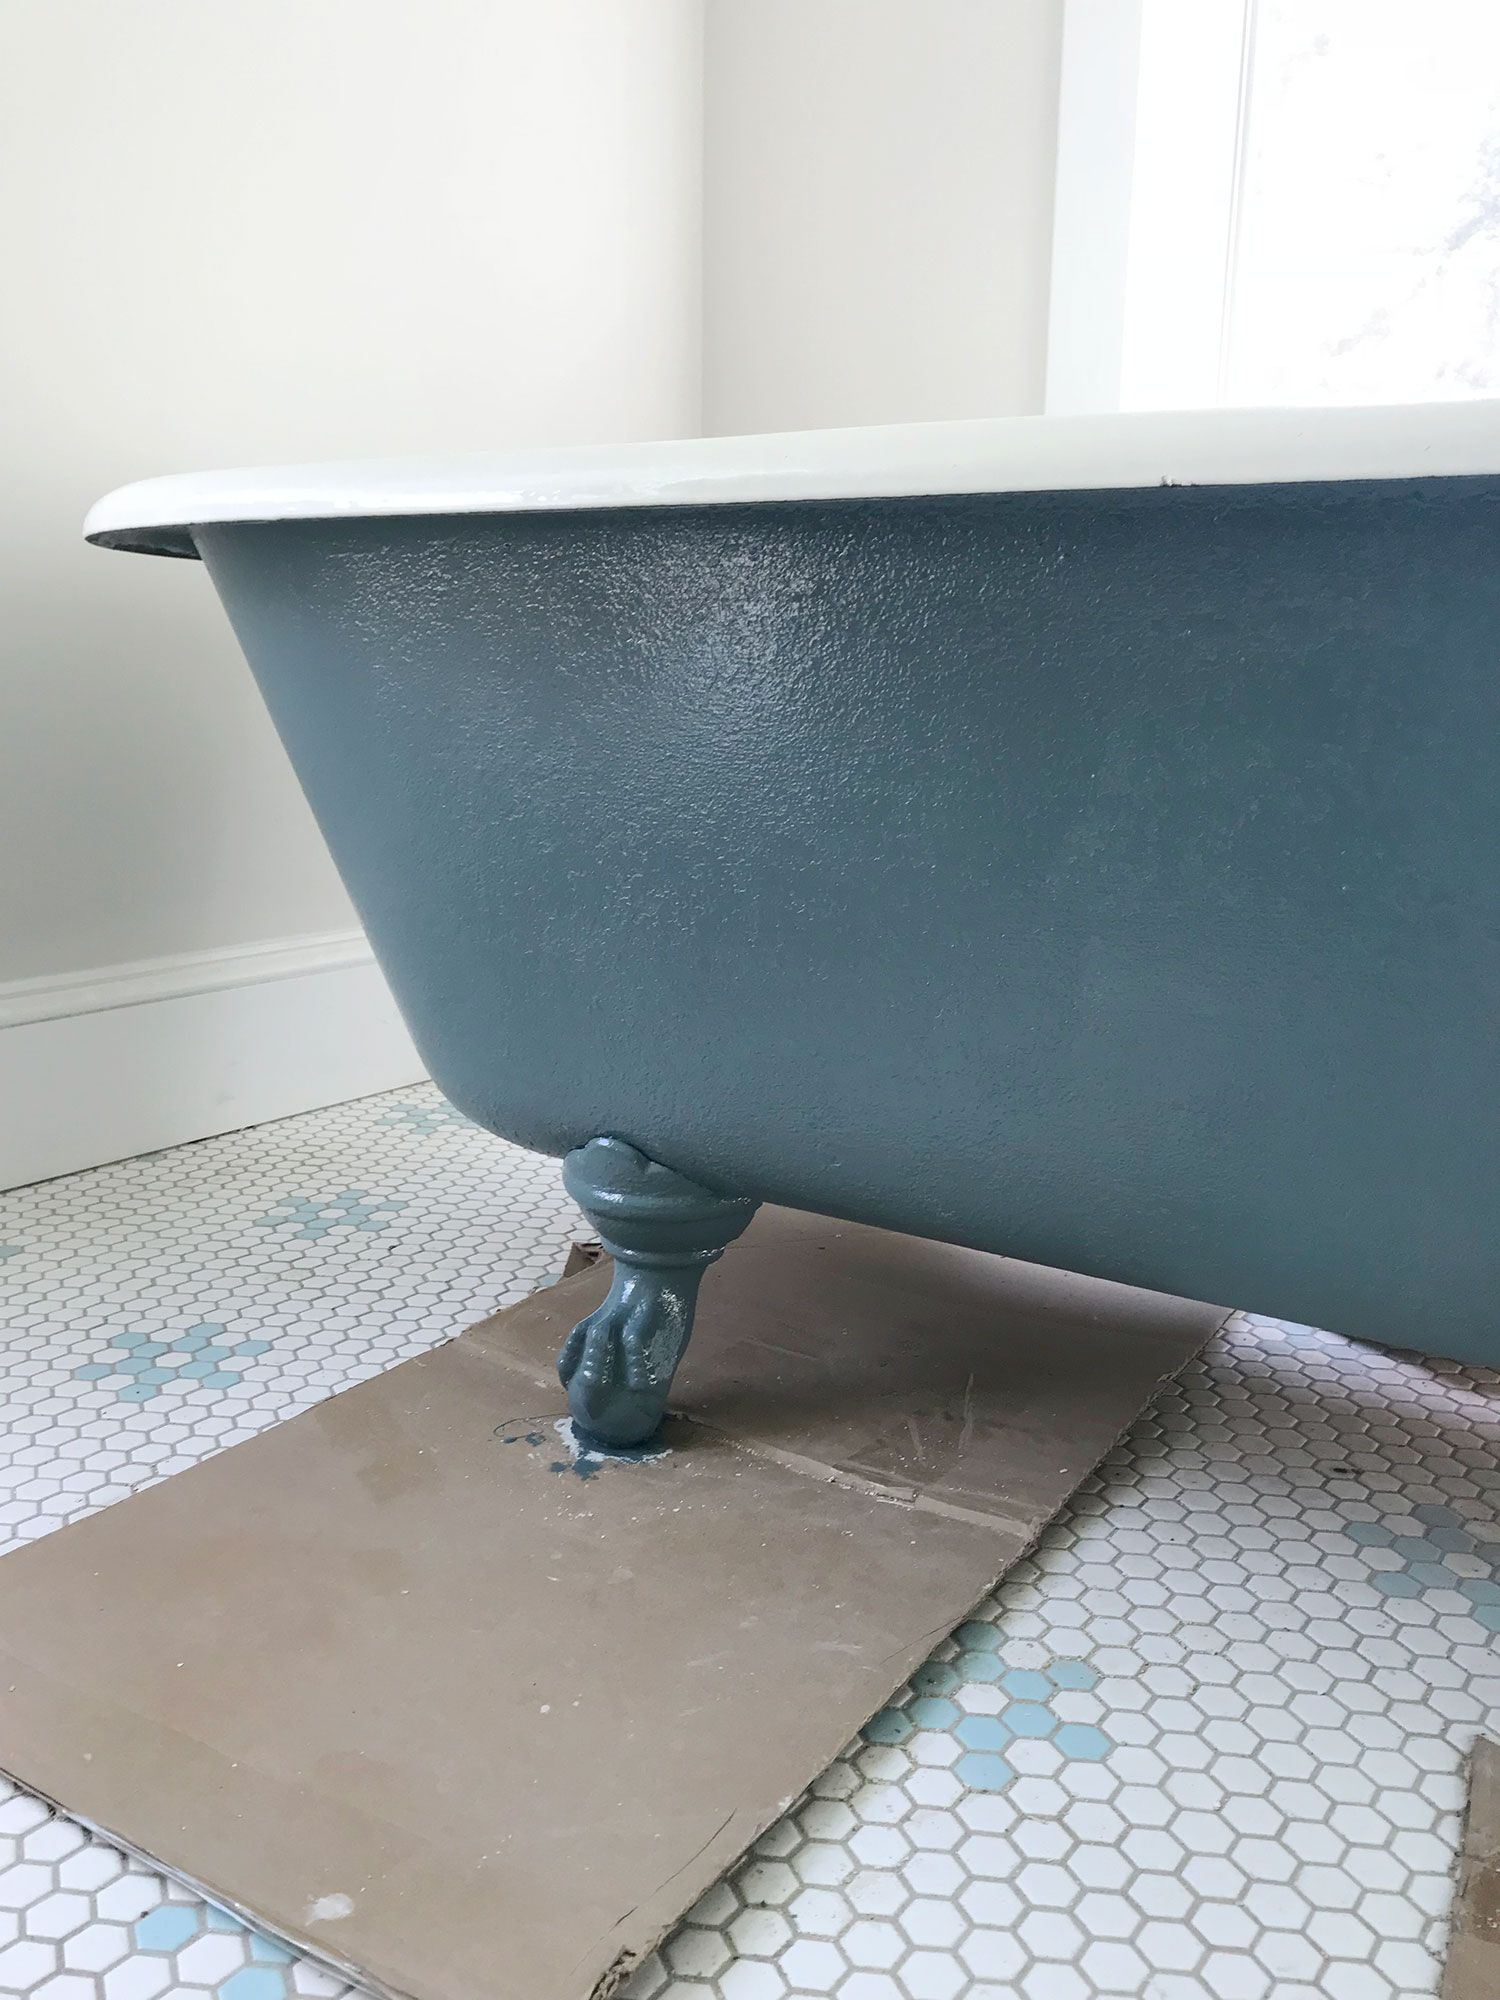 How To Refinish A Nasty, Old Clawfoot Tub | Pinterest | Tubs, Bath ...